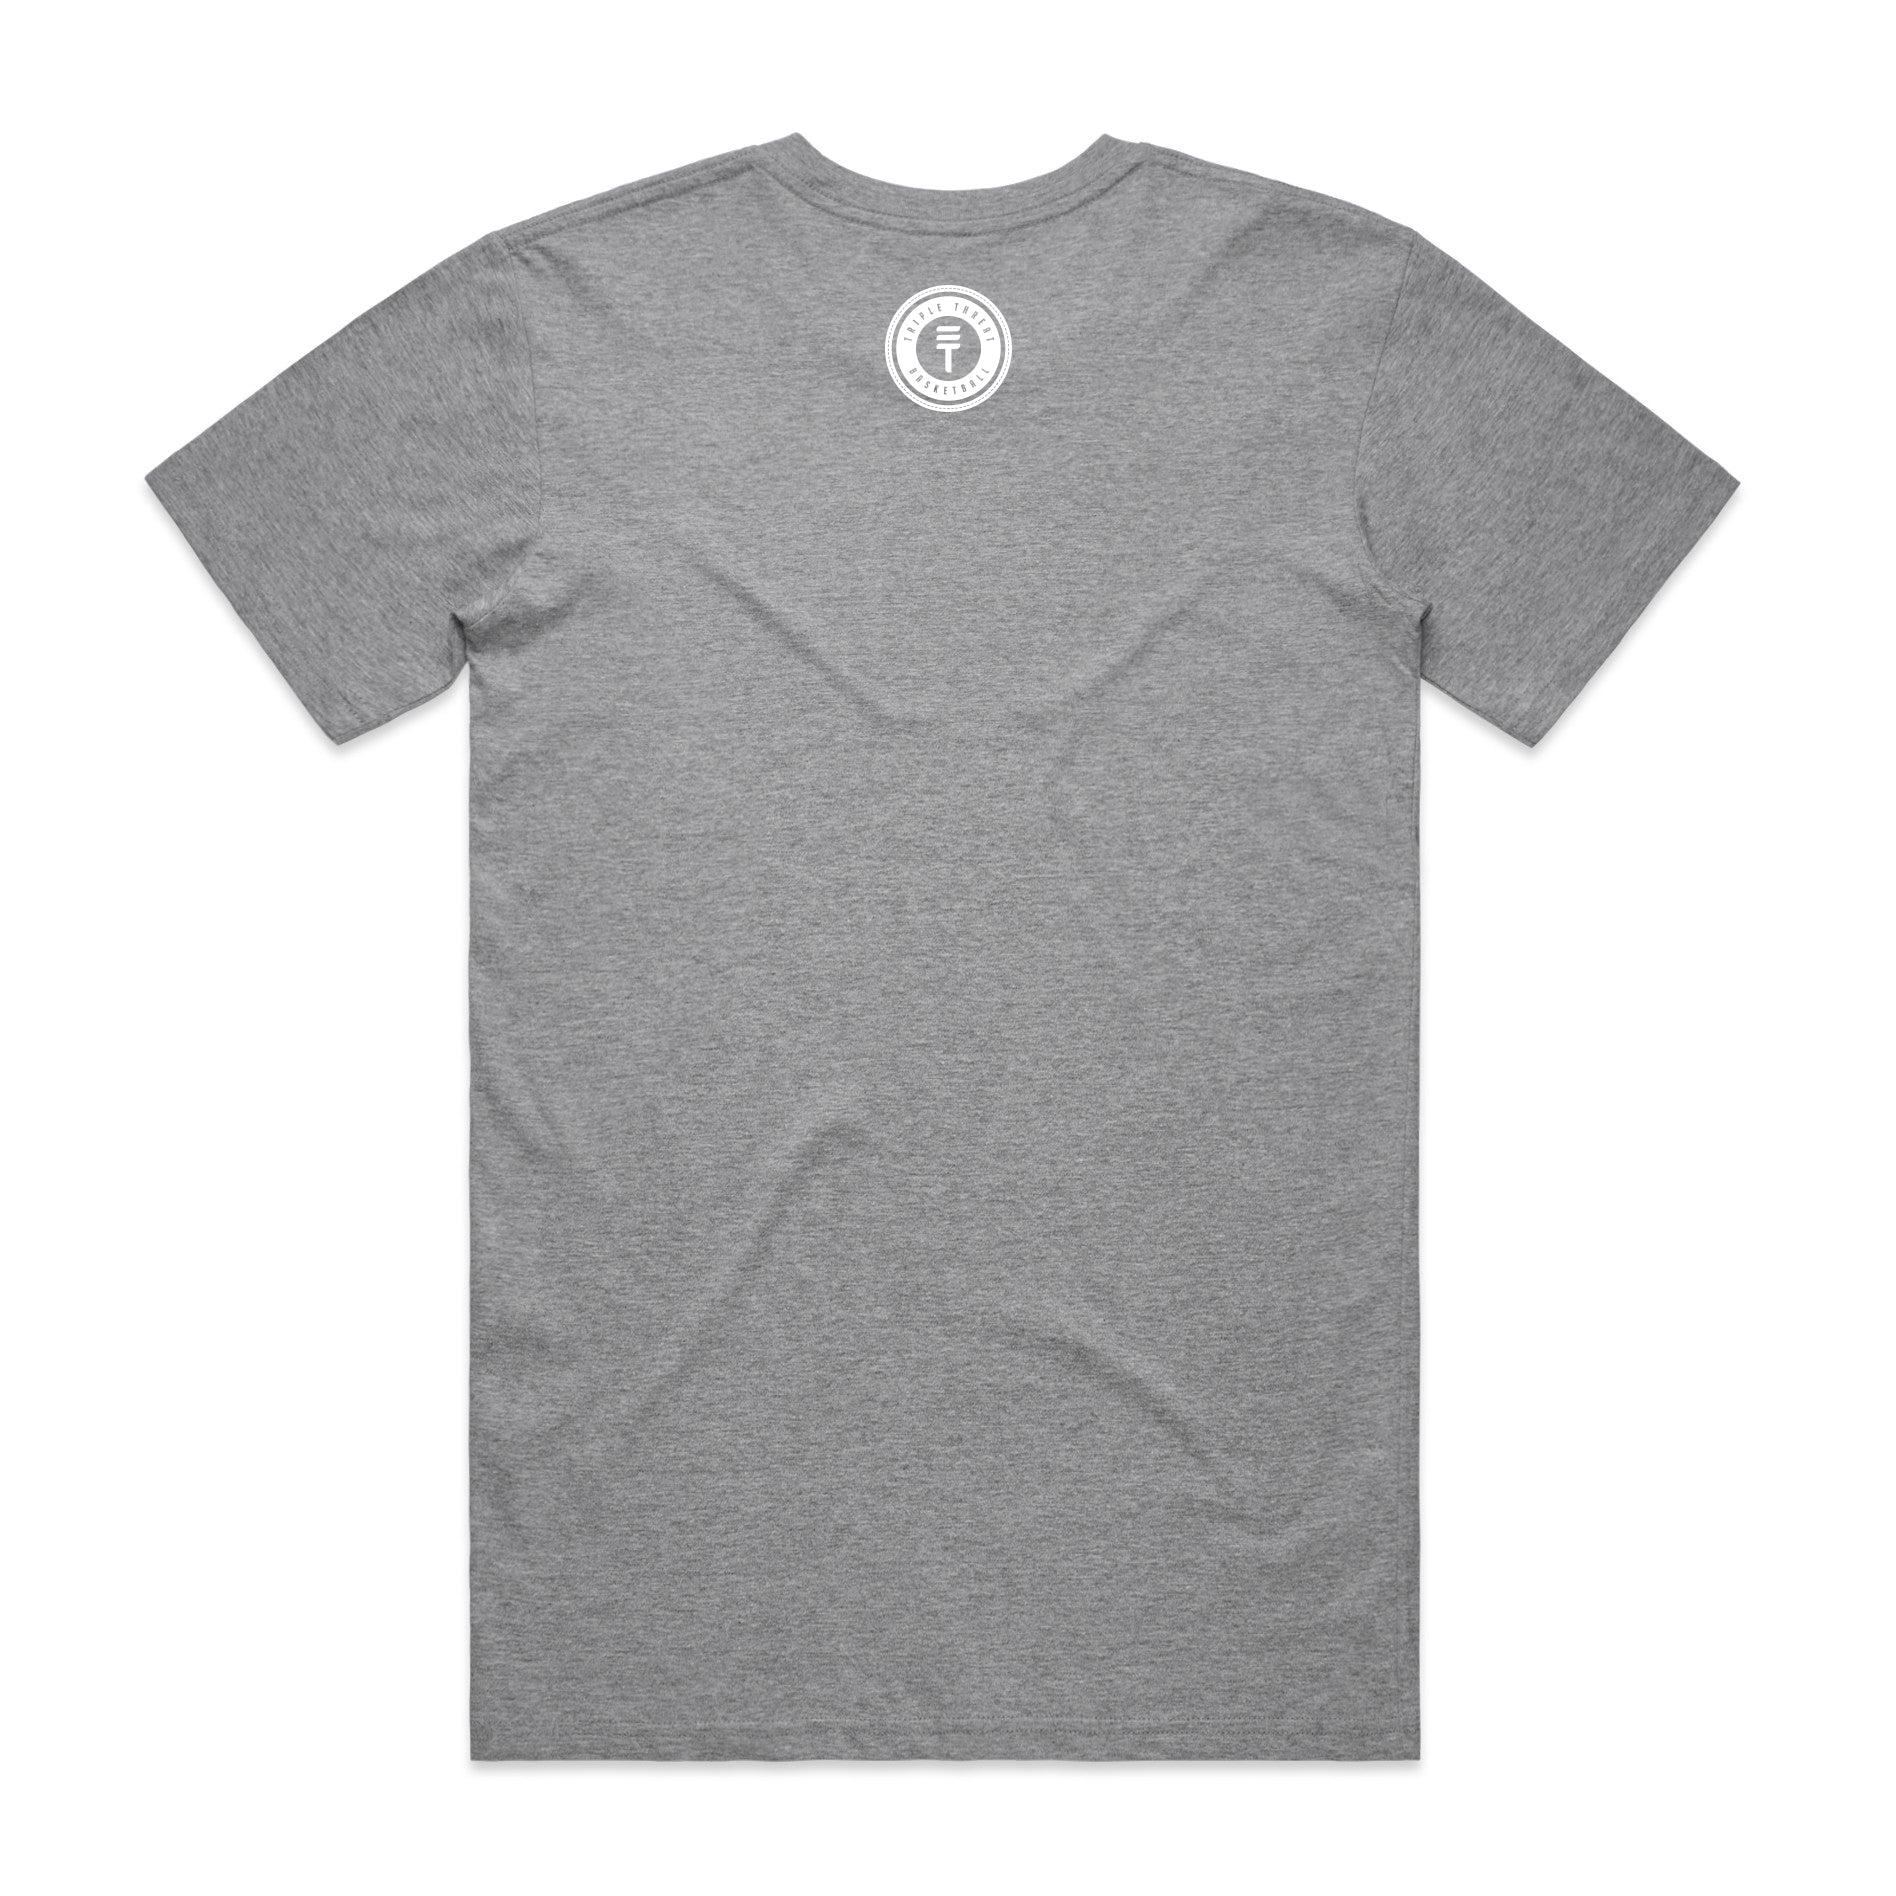 ROUND LOGO T-SHIRT - GREY